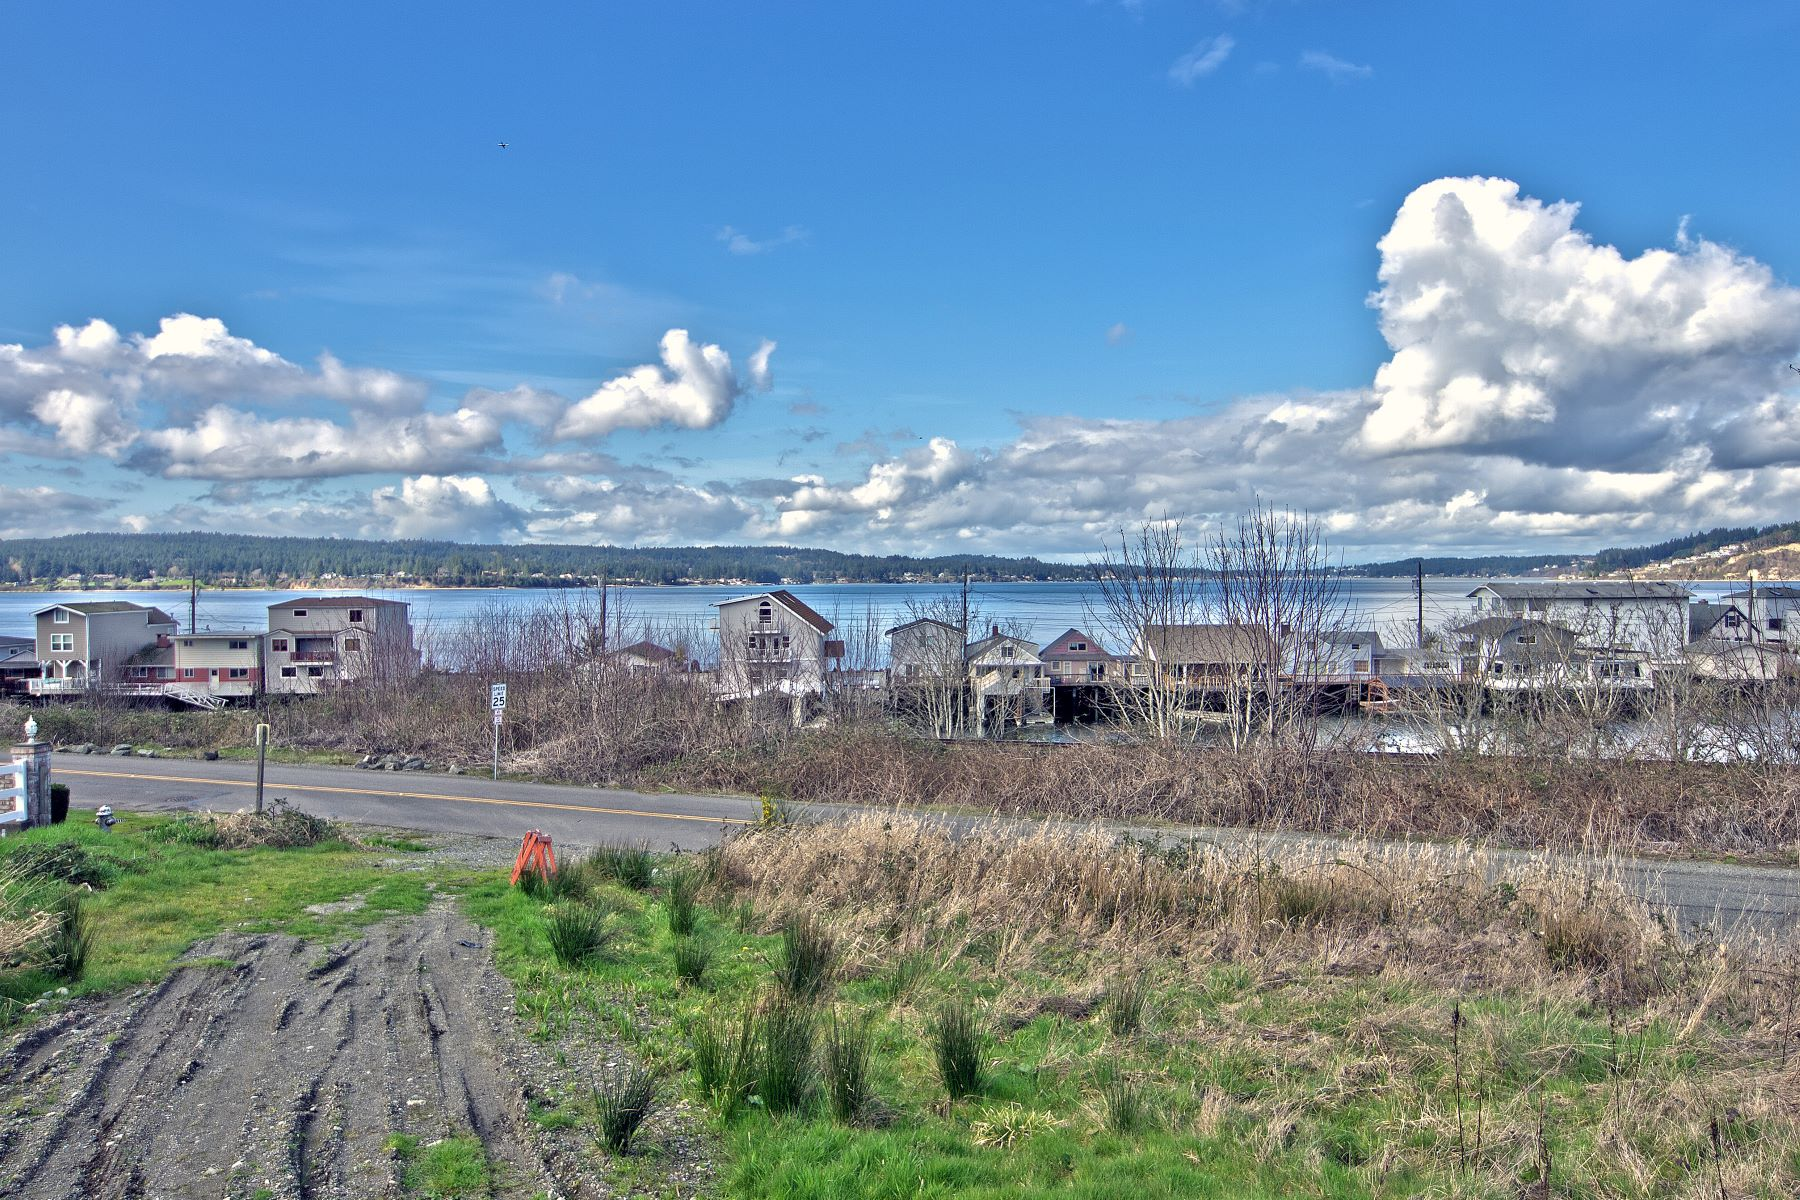 Land for Sale at Puget Sound View Lot 2605 Lemons Beach Rd W University Place, Washington 98466 United States